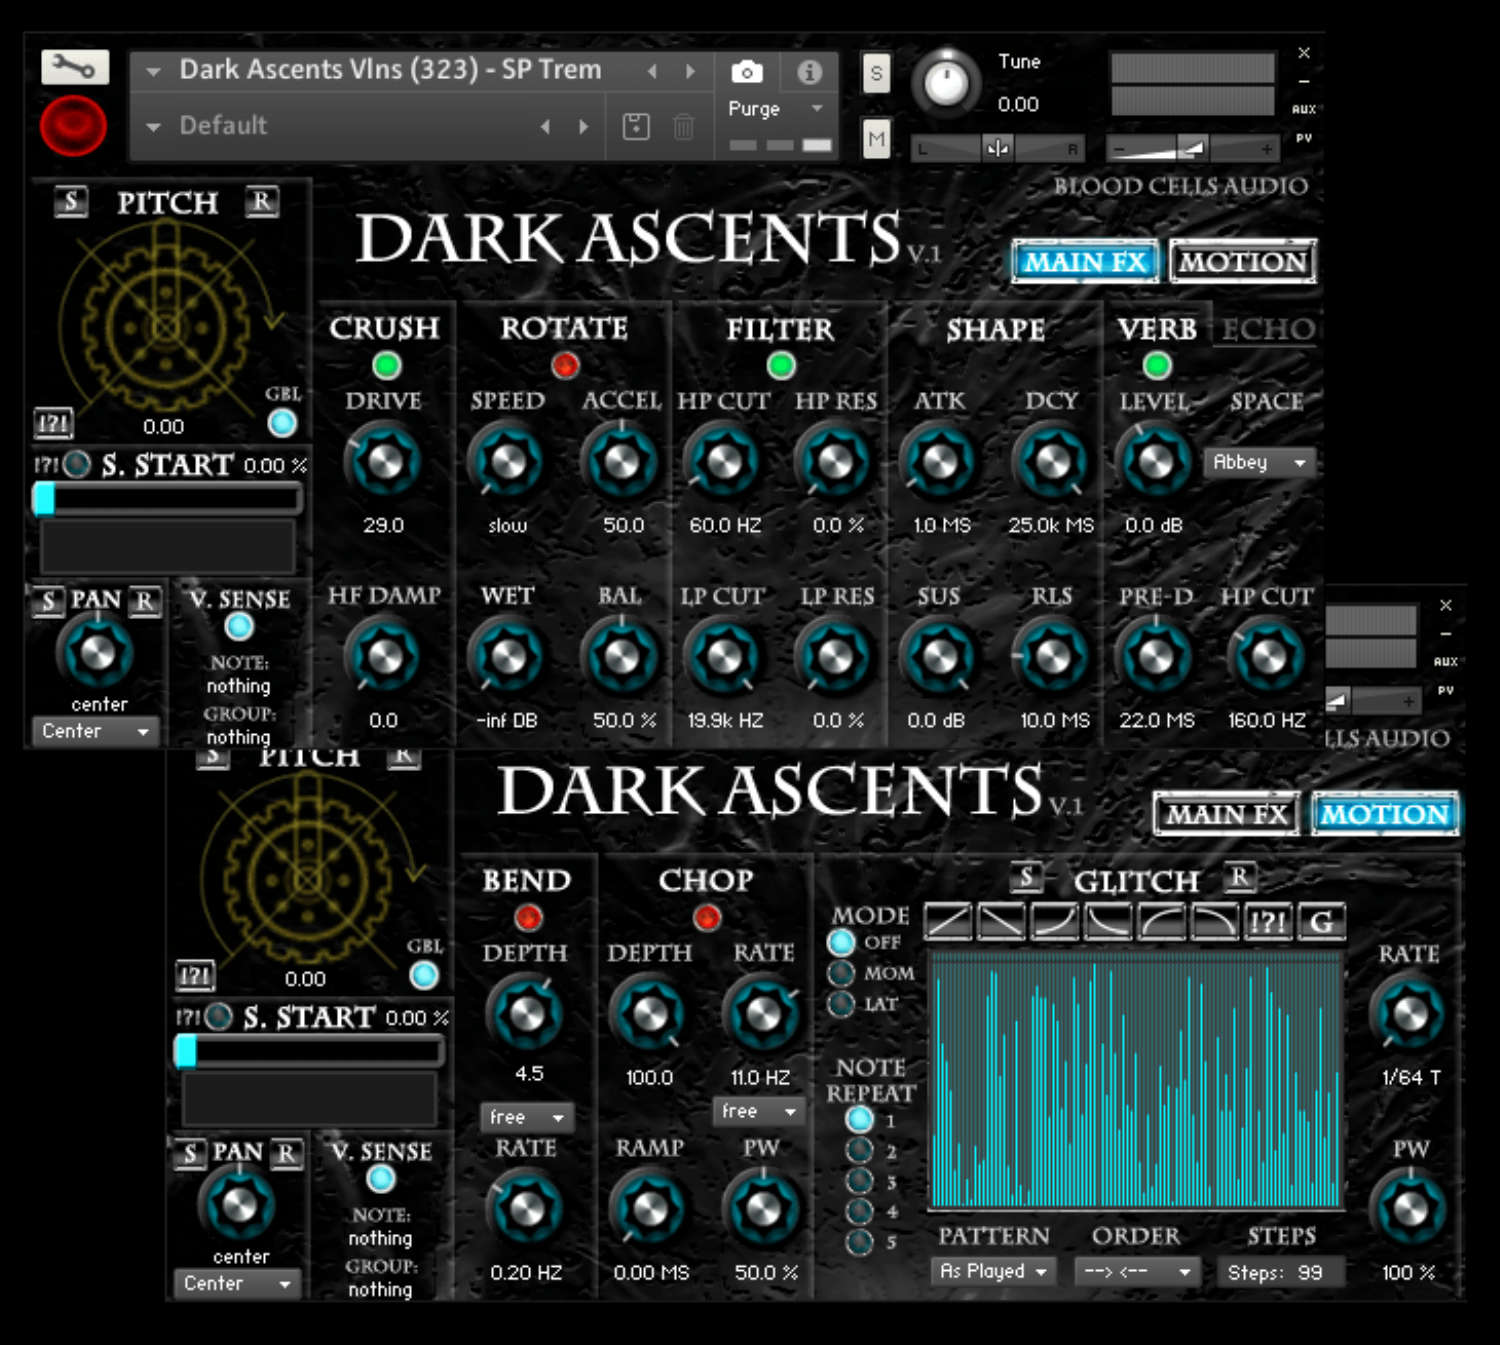 Softwareinstrument Dark Ascents für Native Instruments Kontakt veröffentlicht